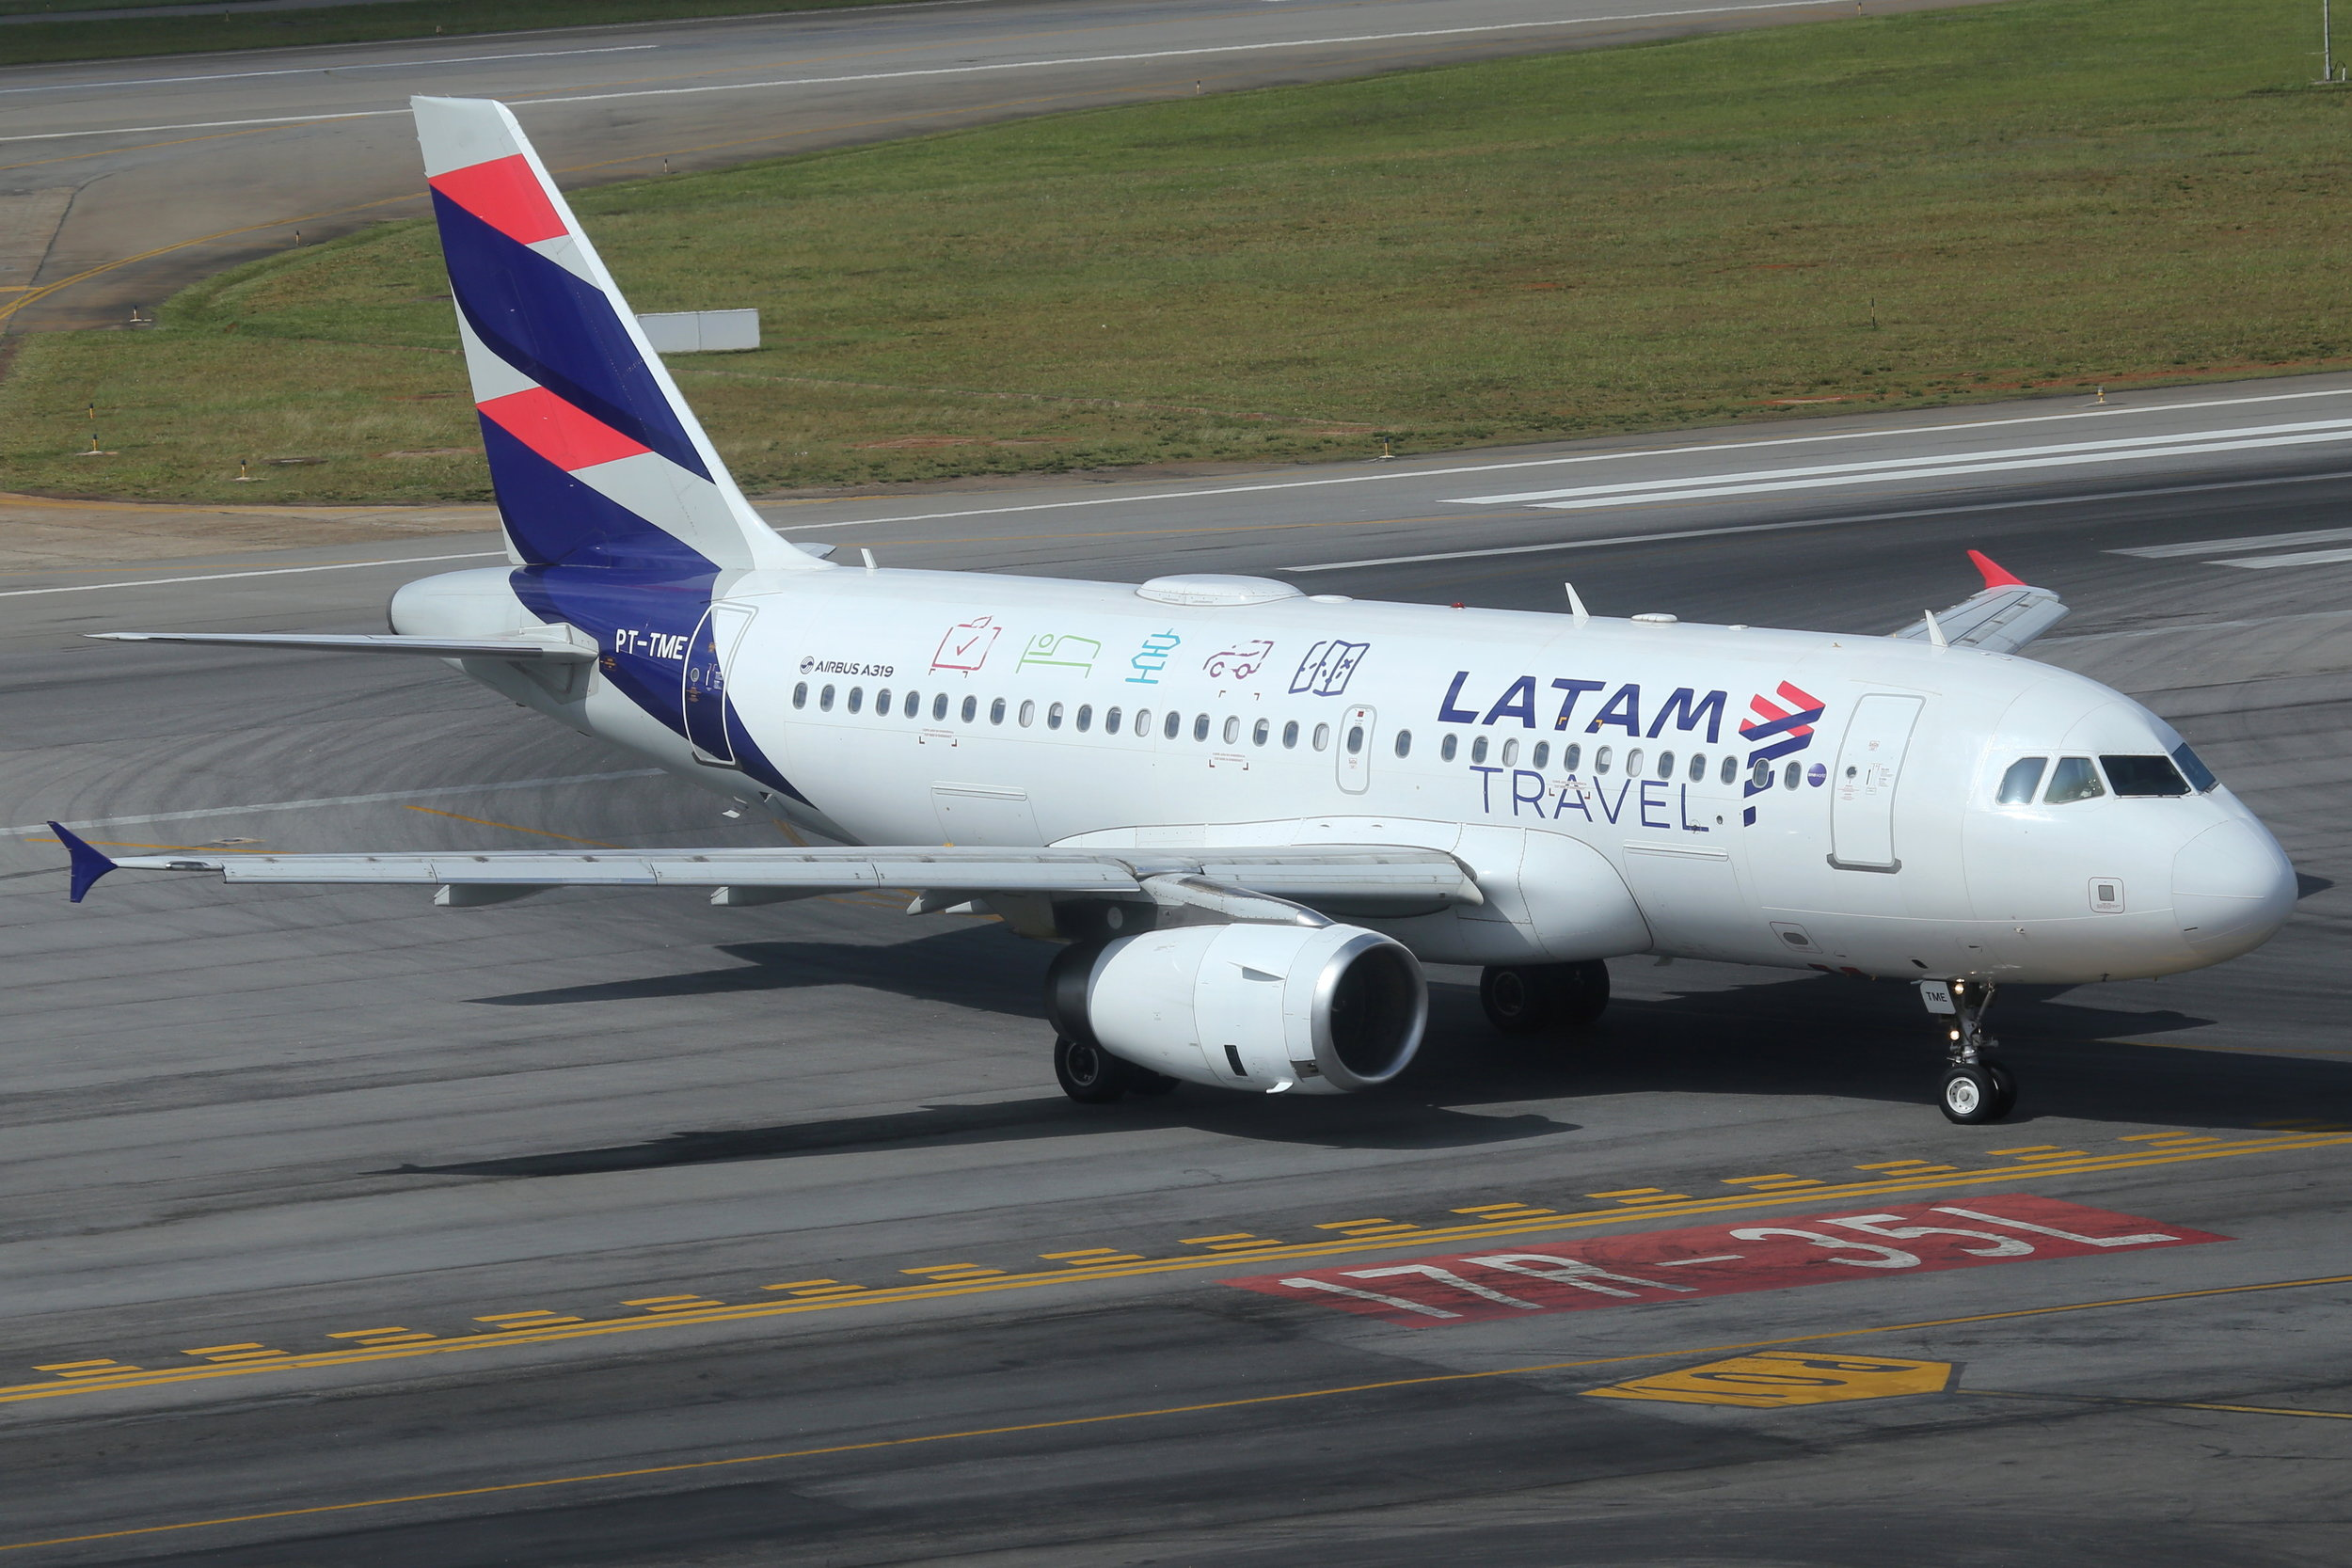 PT-TME LATAM A319 (Travel) taken from the Slaveiro Slim hotel at Sao Paulo Congonhas Airport 28th April 2019 by John Wood